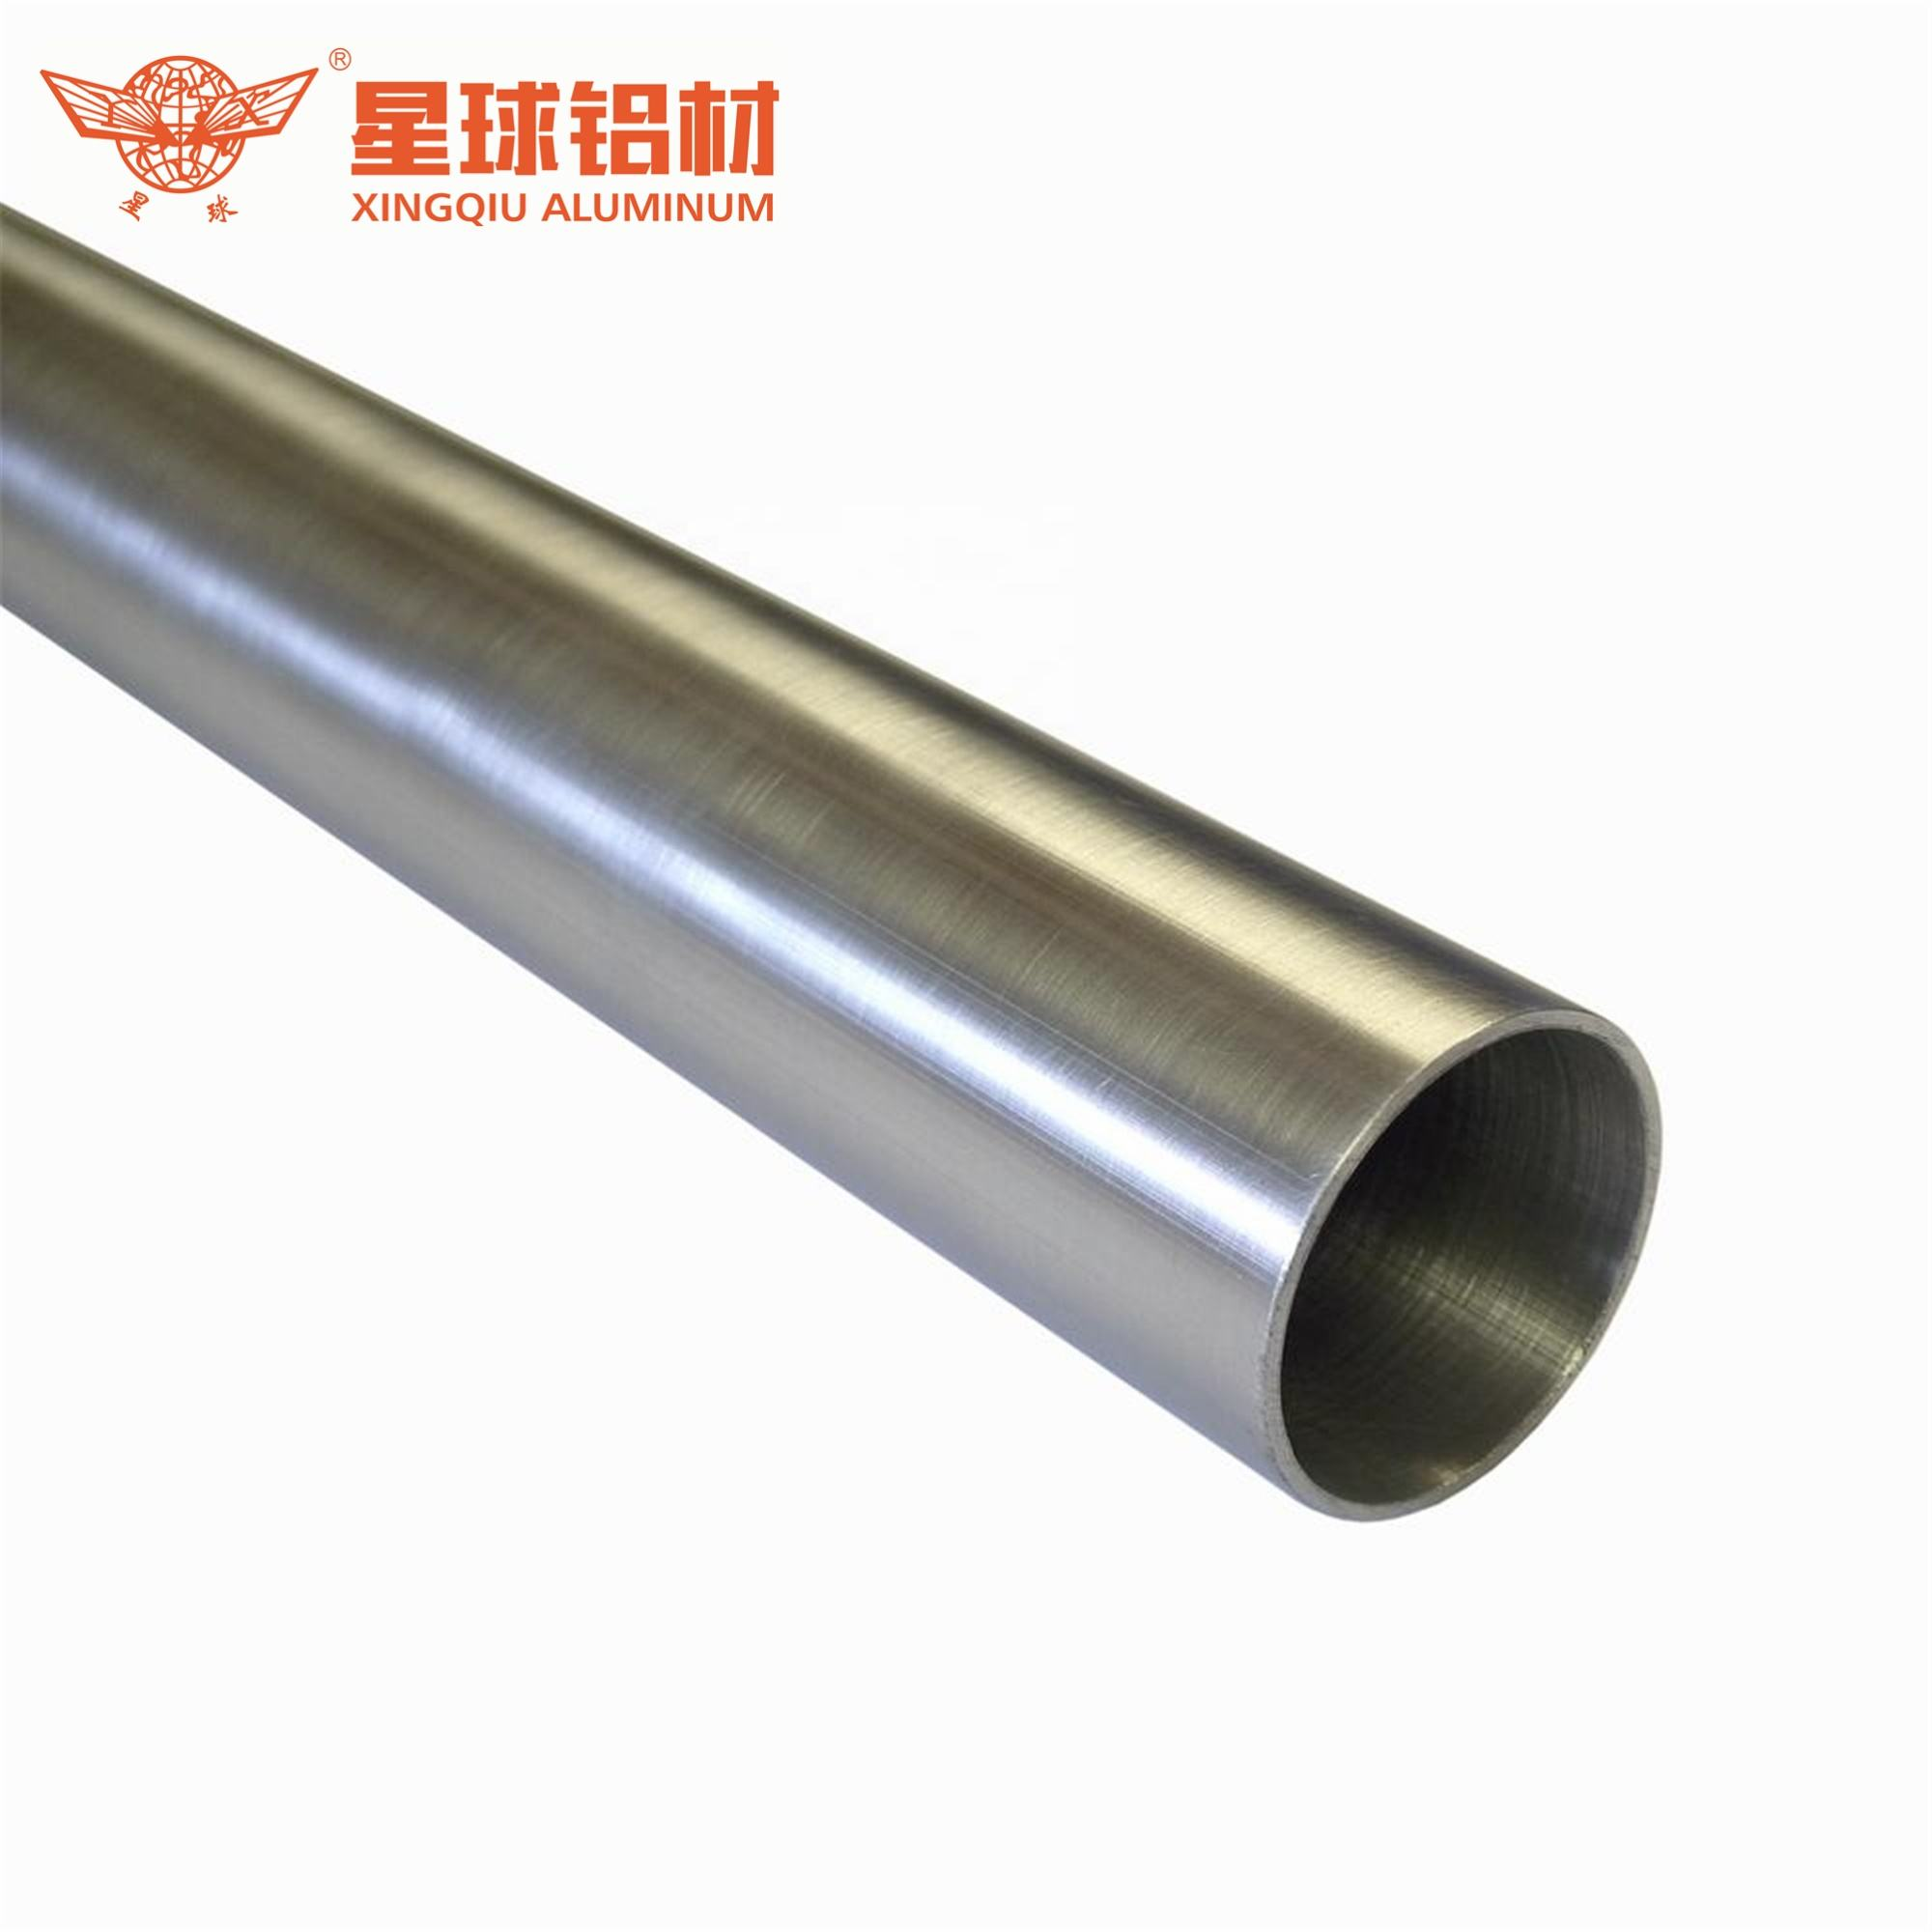 Factory high quality aluminum extrusion profile with rectangular tube